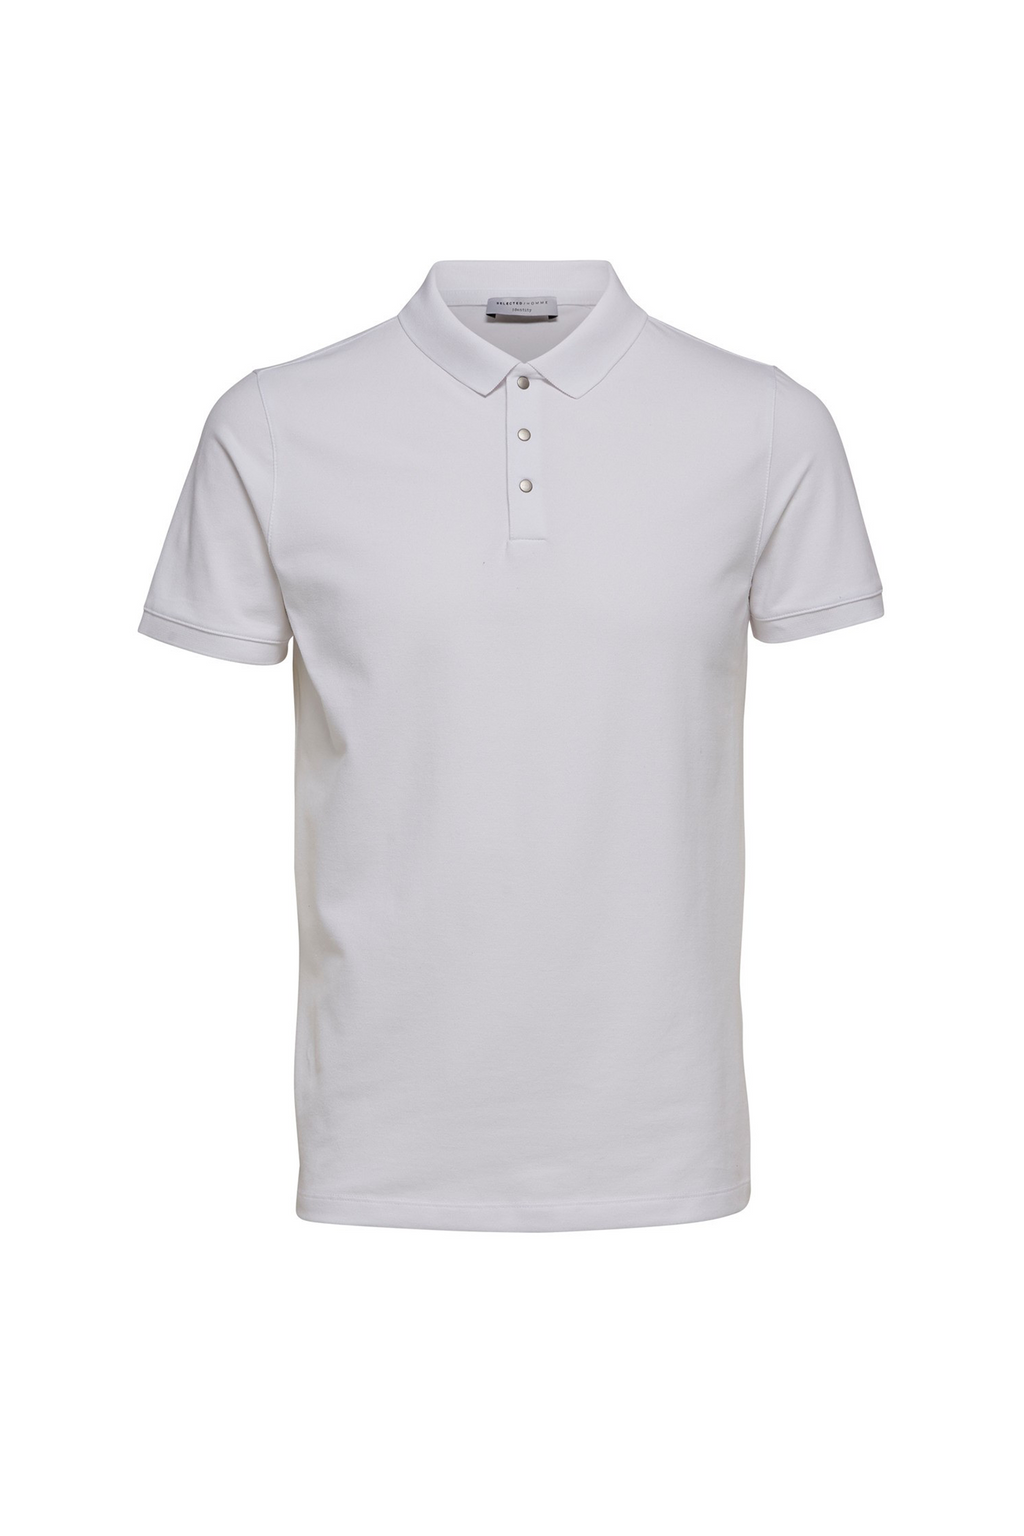 Damon Polo - Bright White - Audace Copenhagen